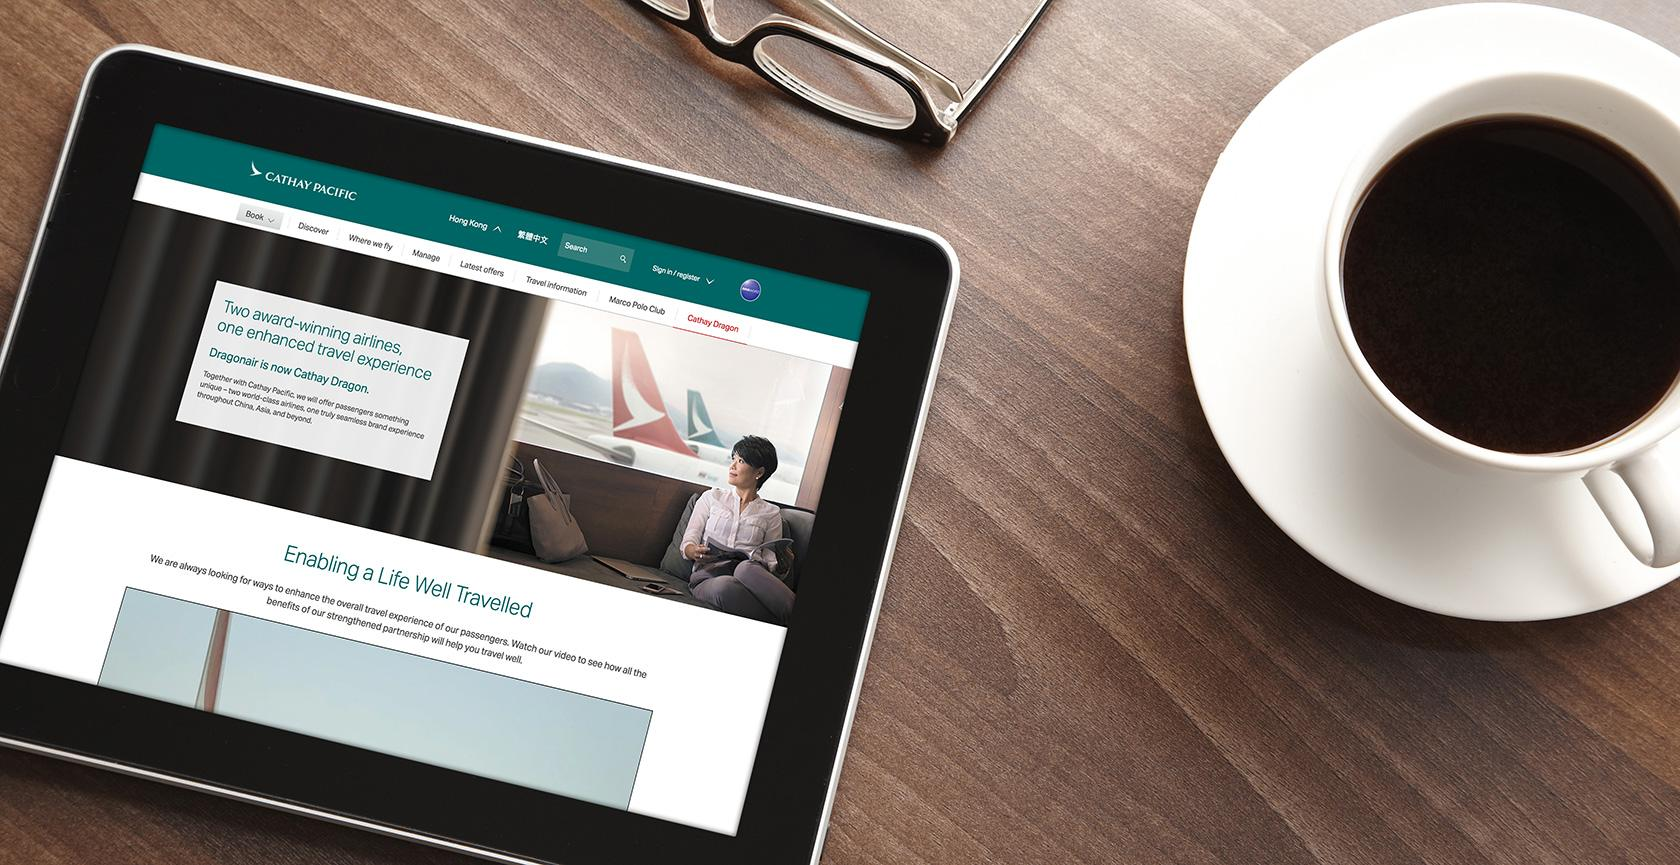 Measuring the ROI of UX with the Cathay Pacific B2B UX redesign case study.